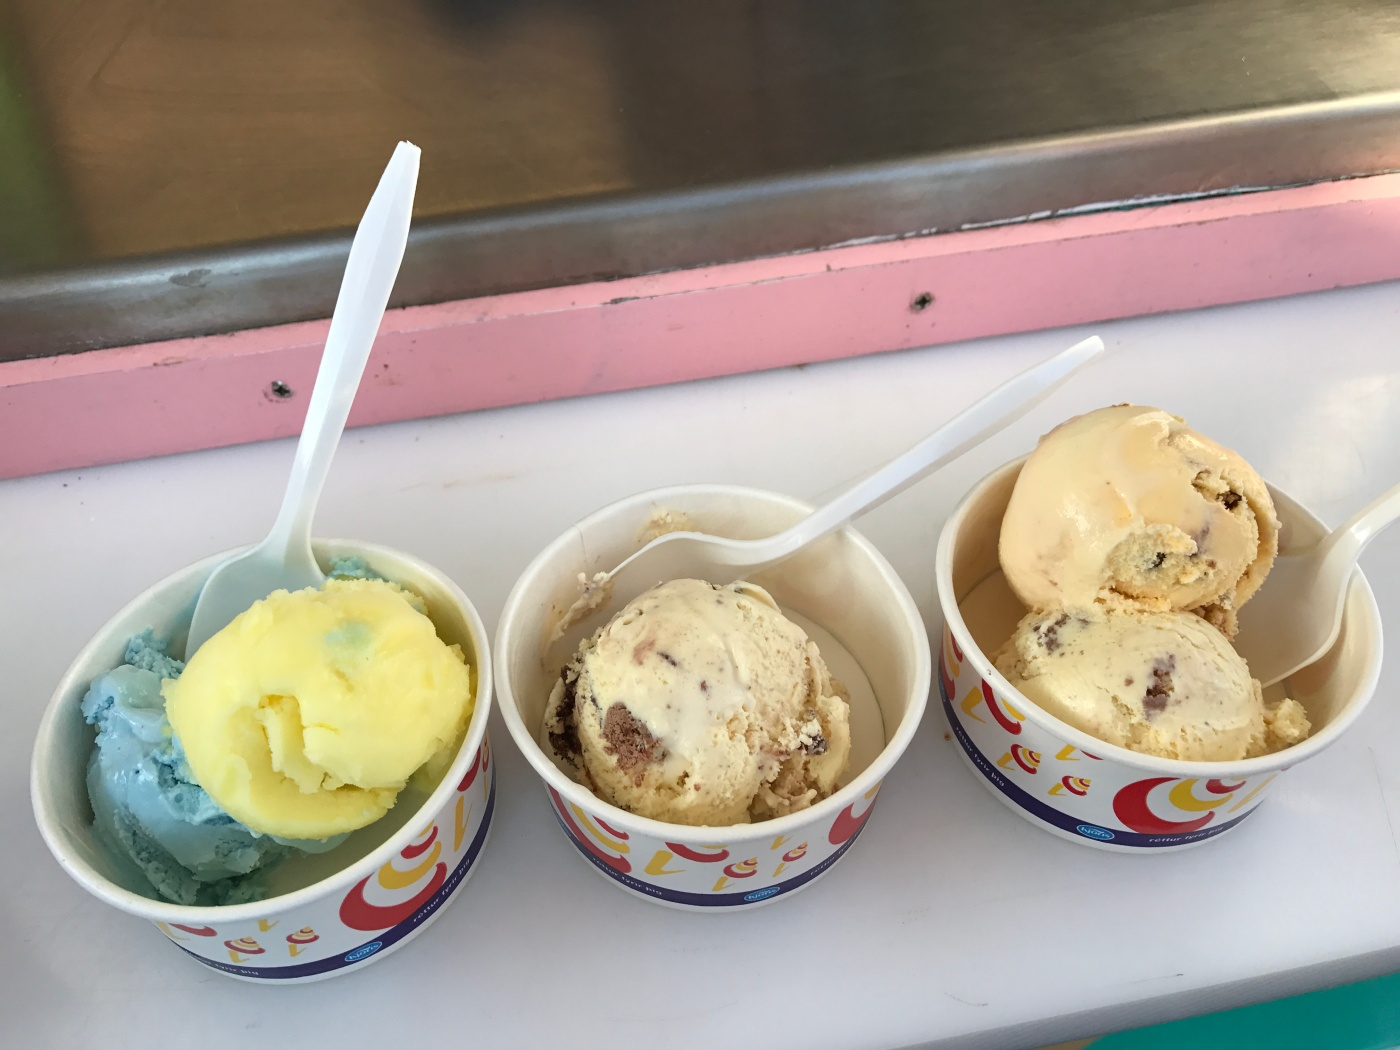 Blue Smurf, Vegan Passion Fruit Sorbet, Cookies and a Scoop of Banana Chocolate Ice Cream at Ís Kofinn in Stykkishólmur, Iceland